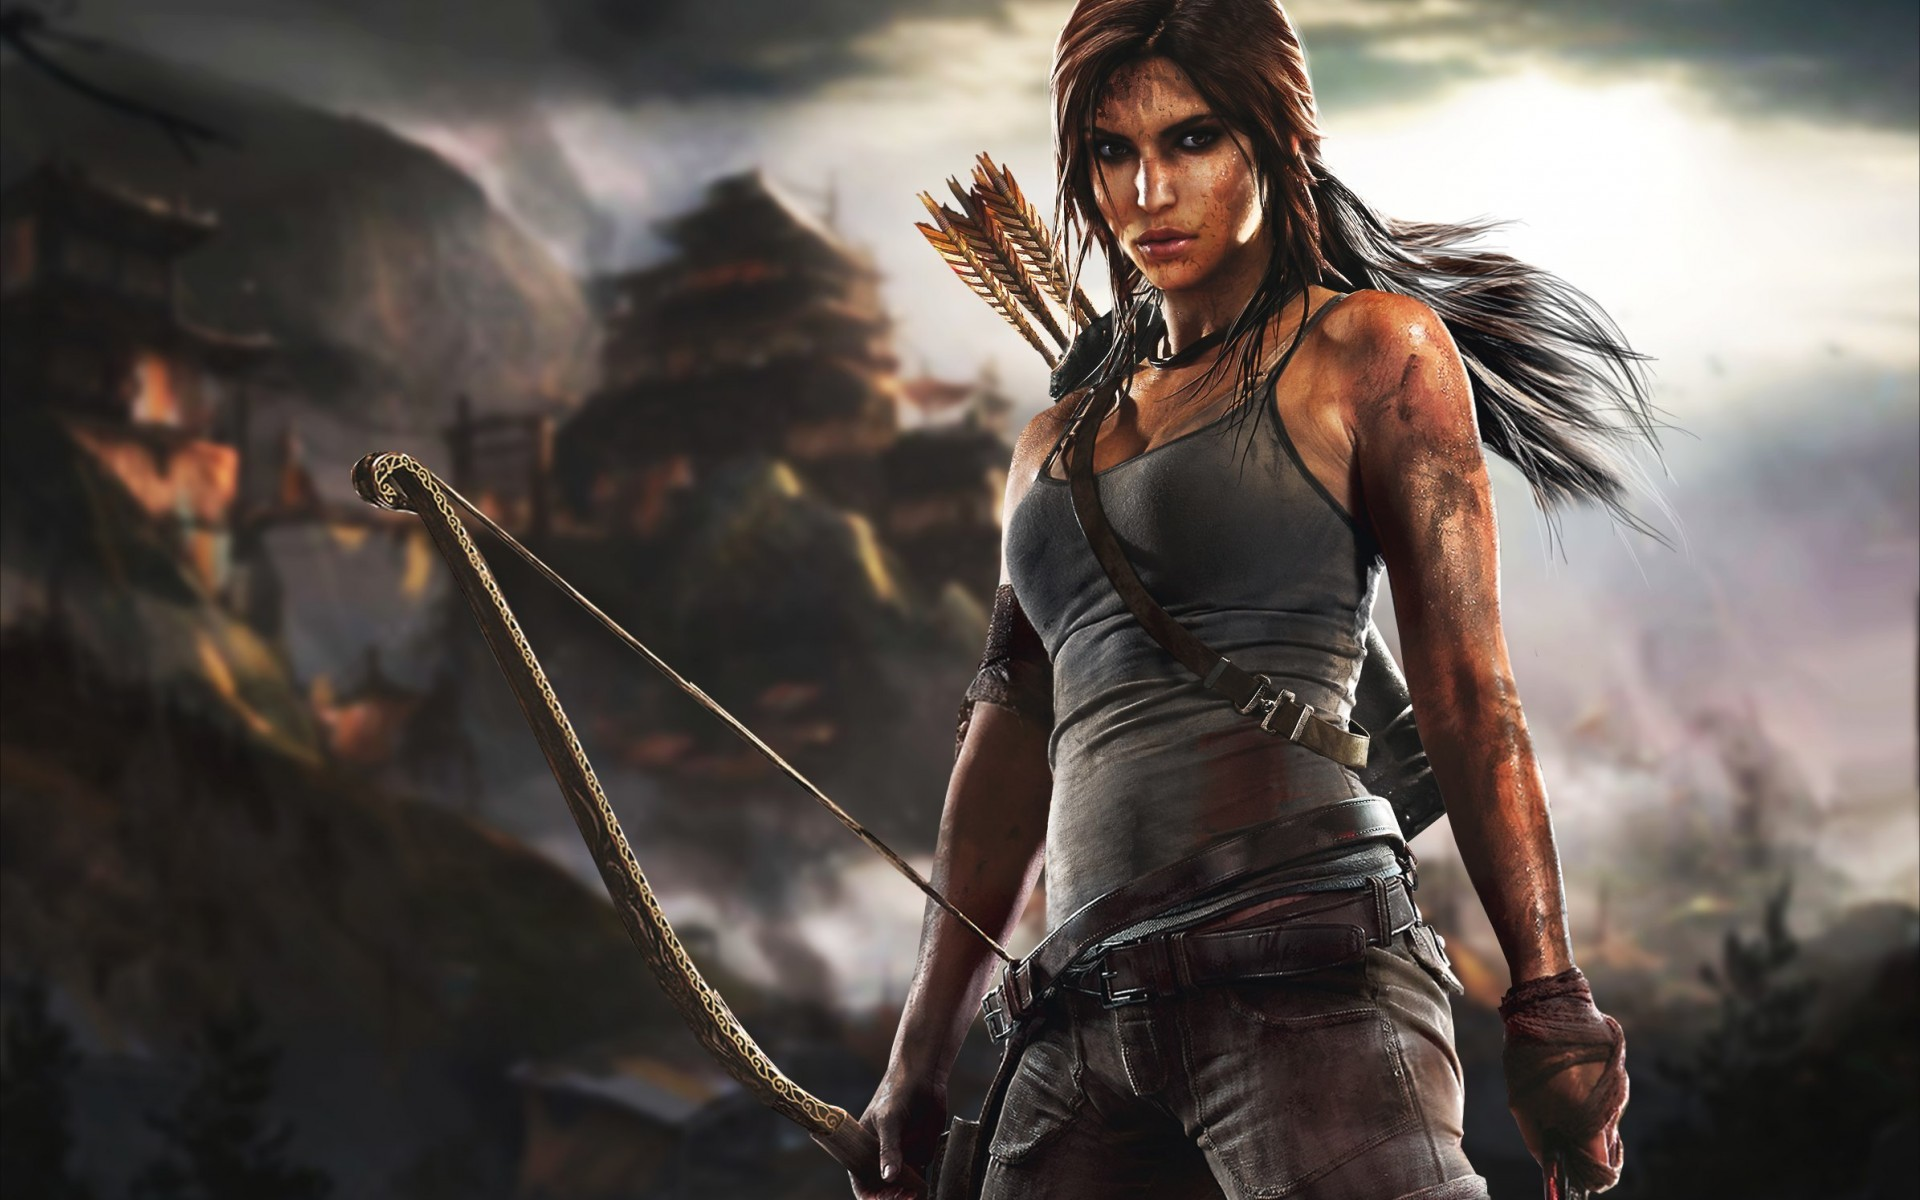 High Resolution Wallpaper | Tomb Raider 1920x1200 px